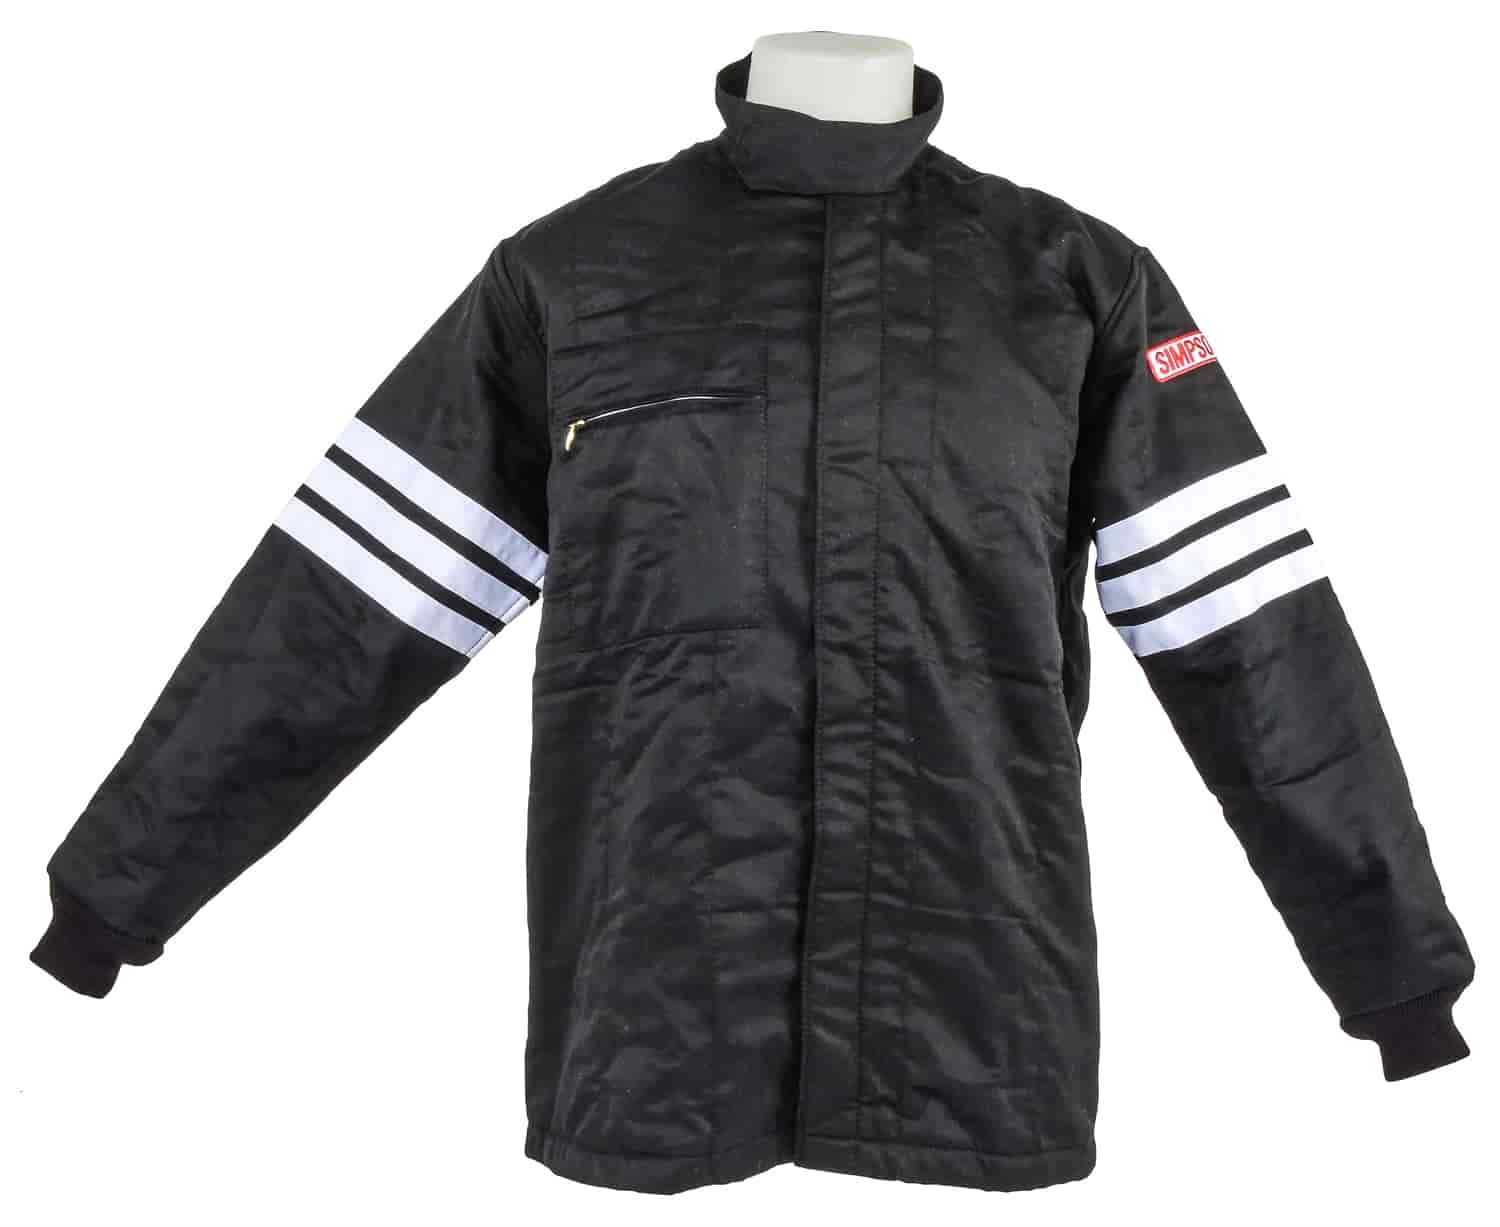 Simpson 0302412 - Simpson Classic 3-Stripe SFI-1 Driving Jackets, Pants and Suits